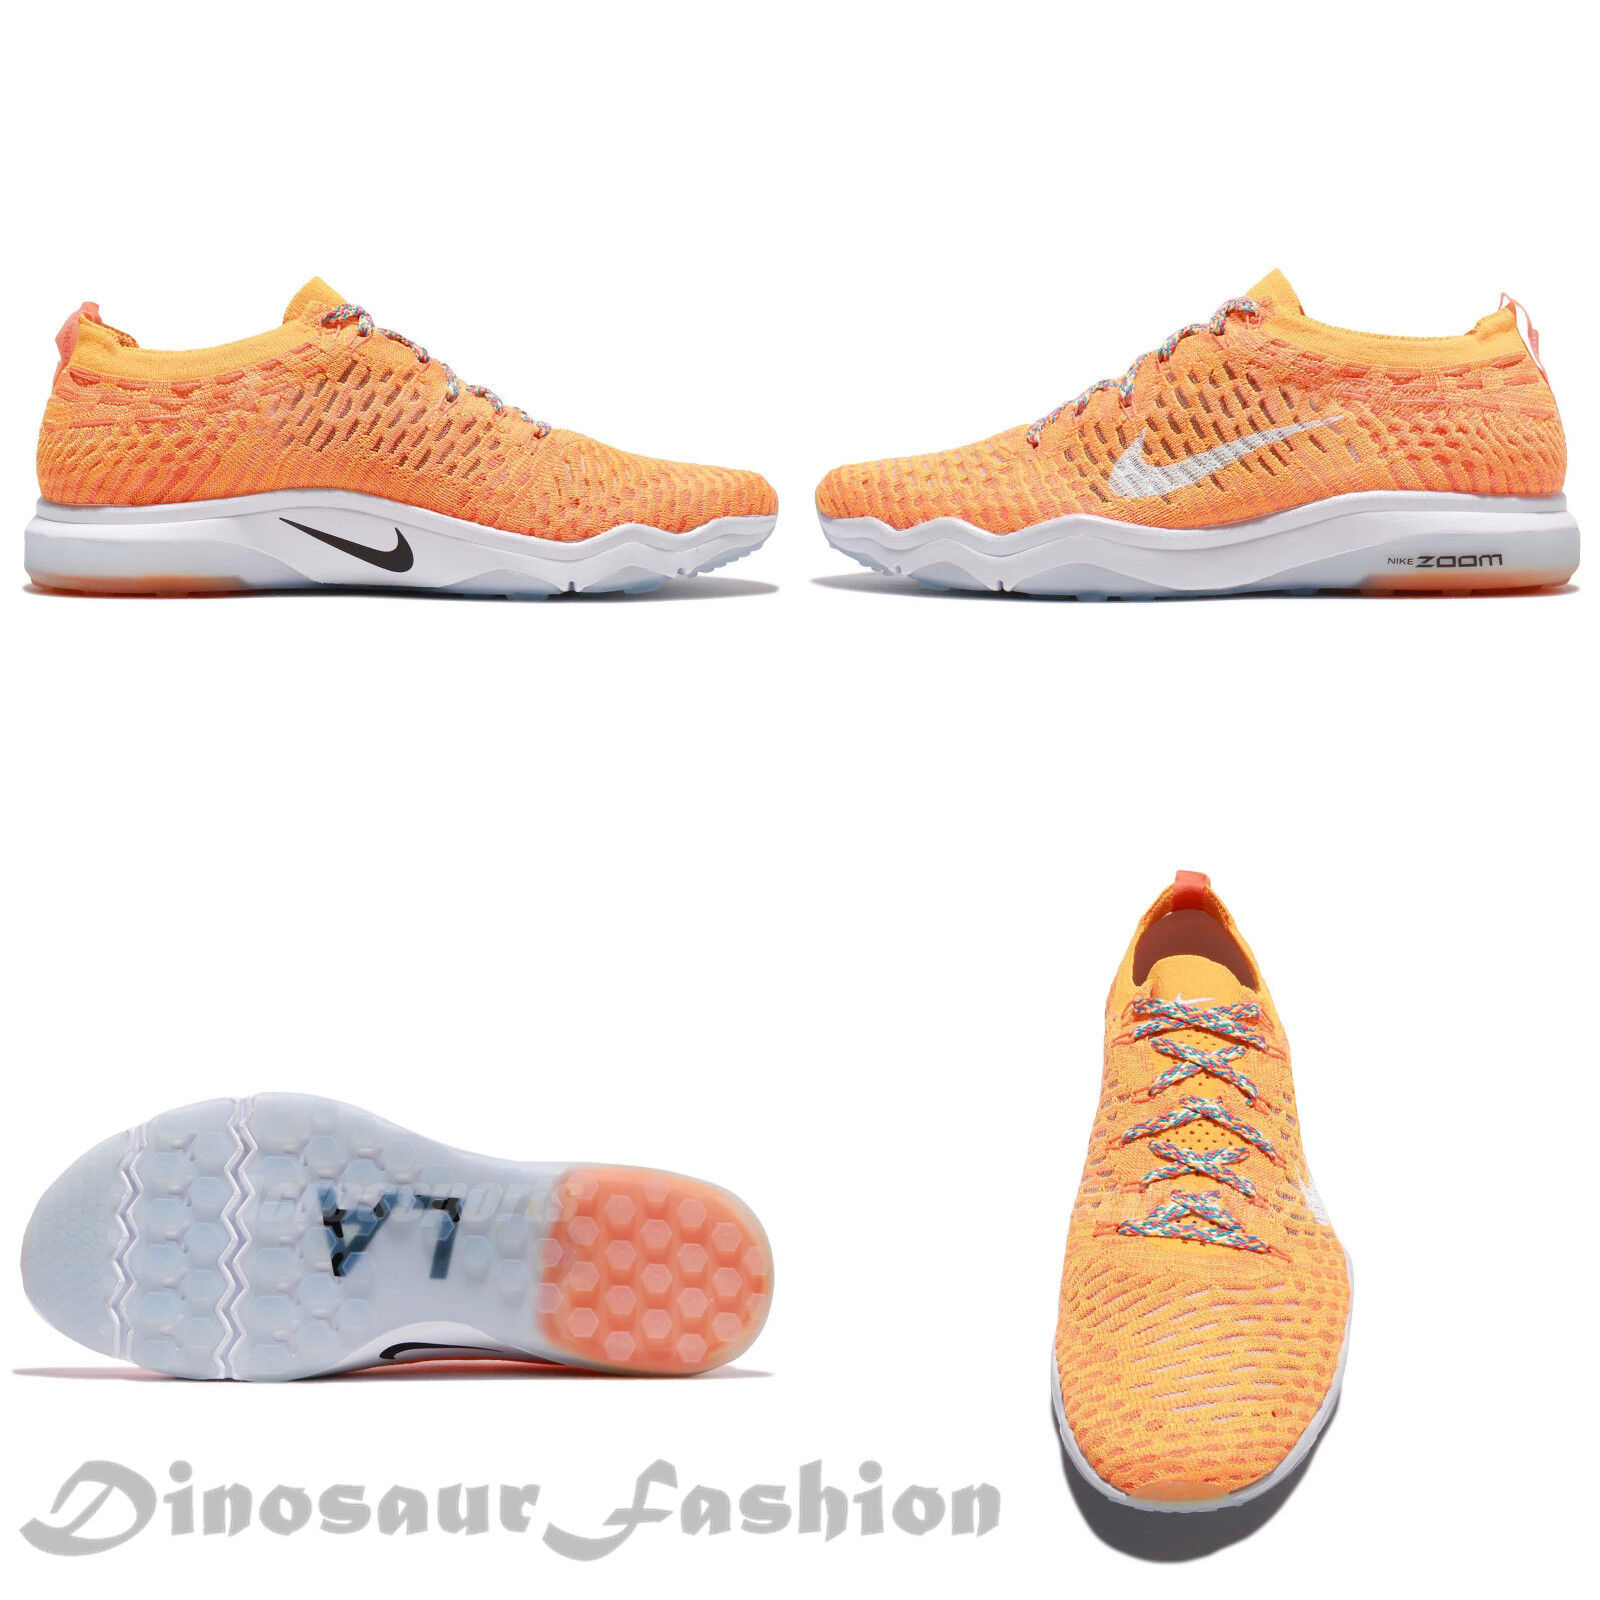 Damen Nike Air Zoom Fearless FK City < 902166-801  , Damen Turnschuhe, Kinder